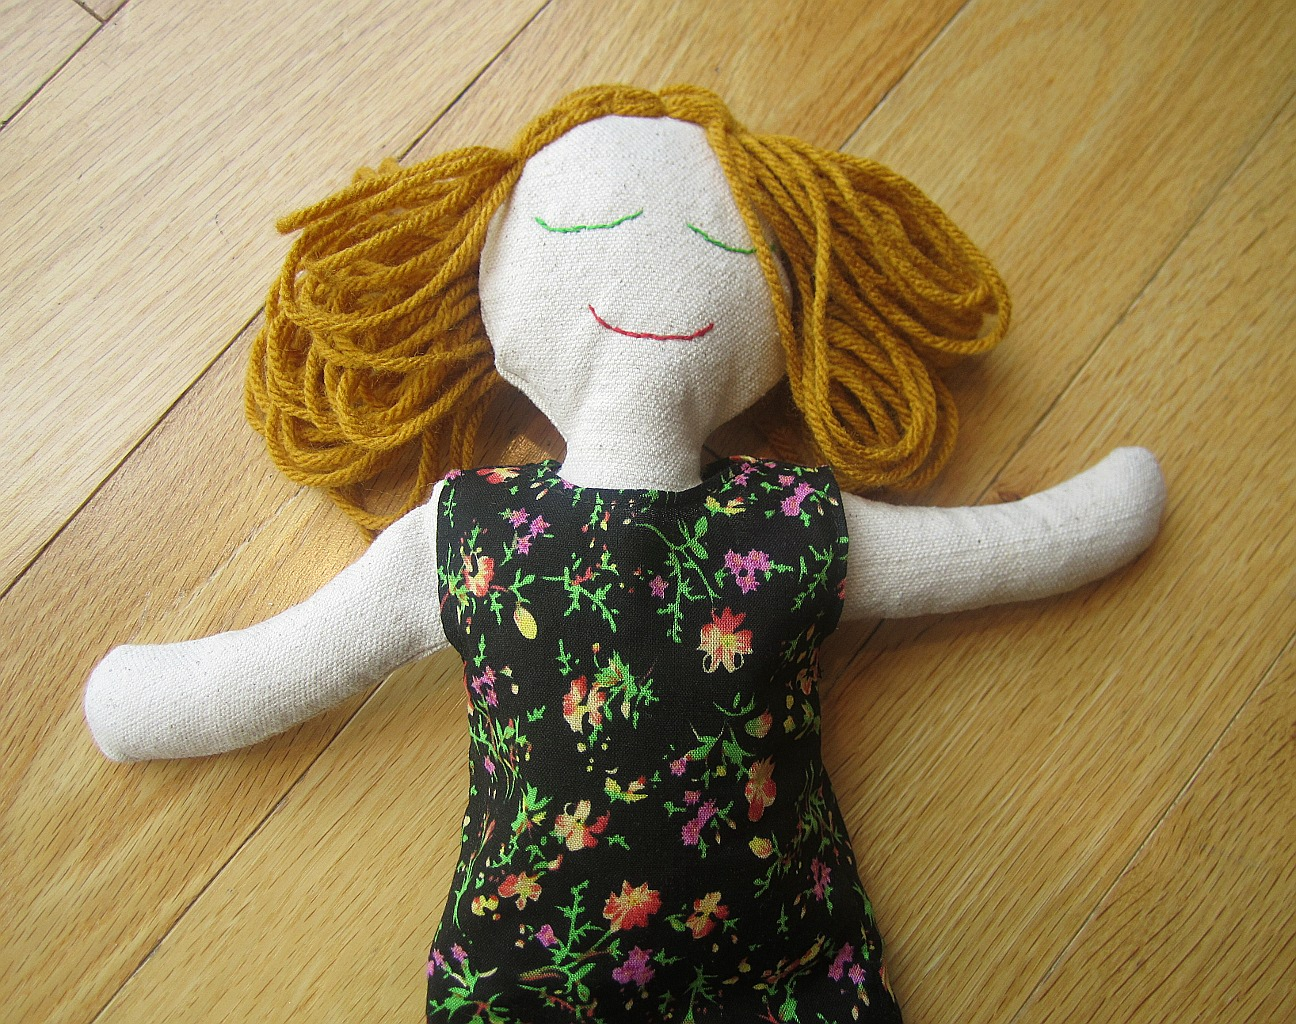 Rag Doll Free Sewing Pattern And Instructions Amie Scott